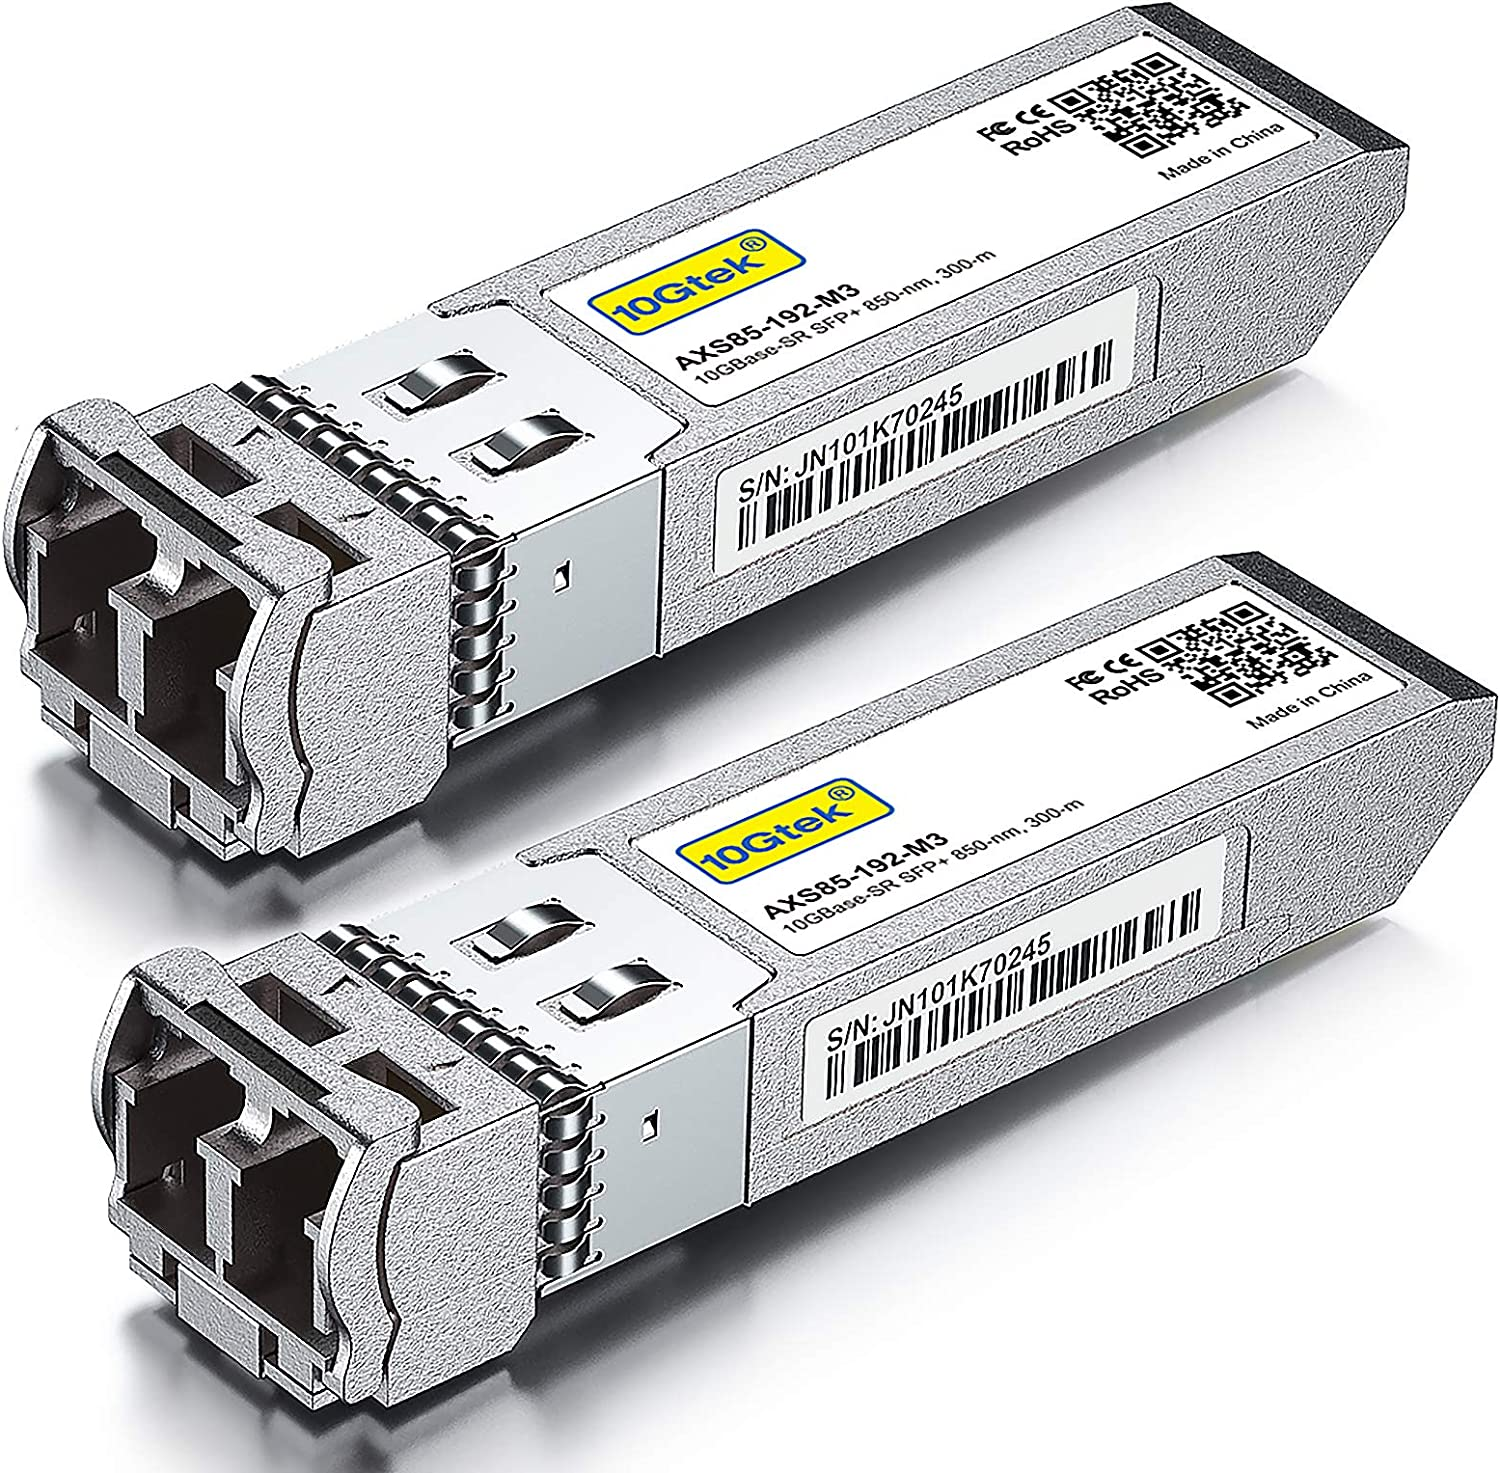 10GBase-SR SFP+ Transceiver, 10G 850nm MMF, up to 300 Meters, Compatible with Ubiquiti UniFi UF-MM-10G, Pack of 2